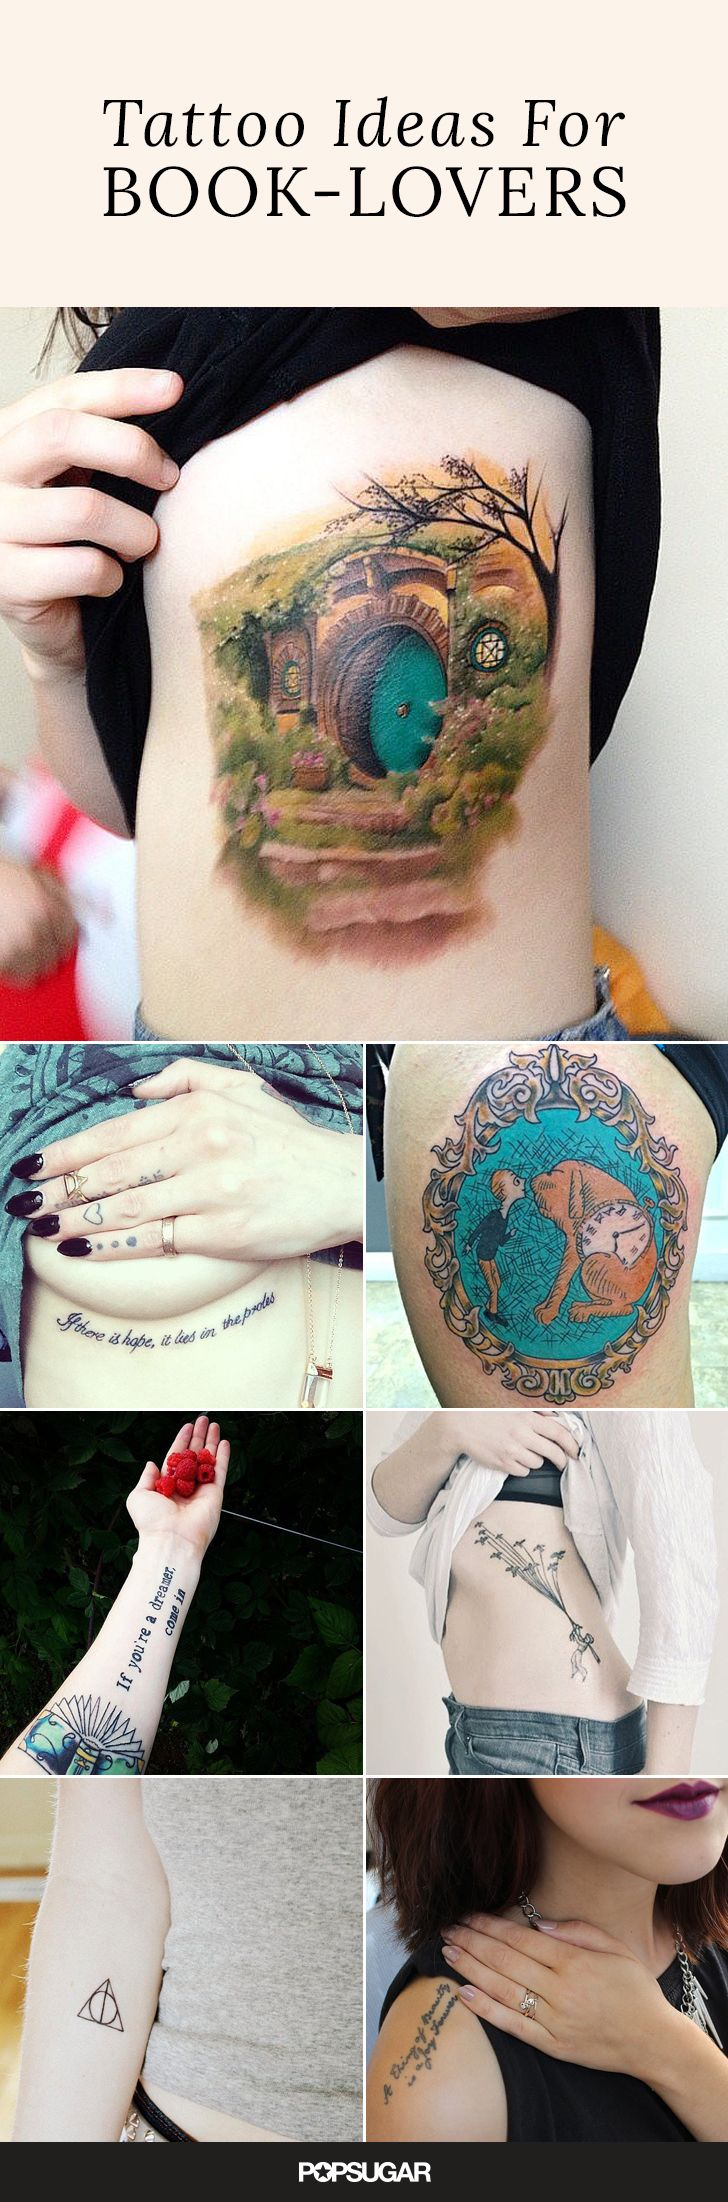 Tattoo Quotes - Famous quotes about tattoos & tattooing ...